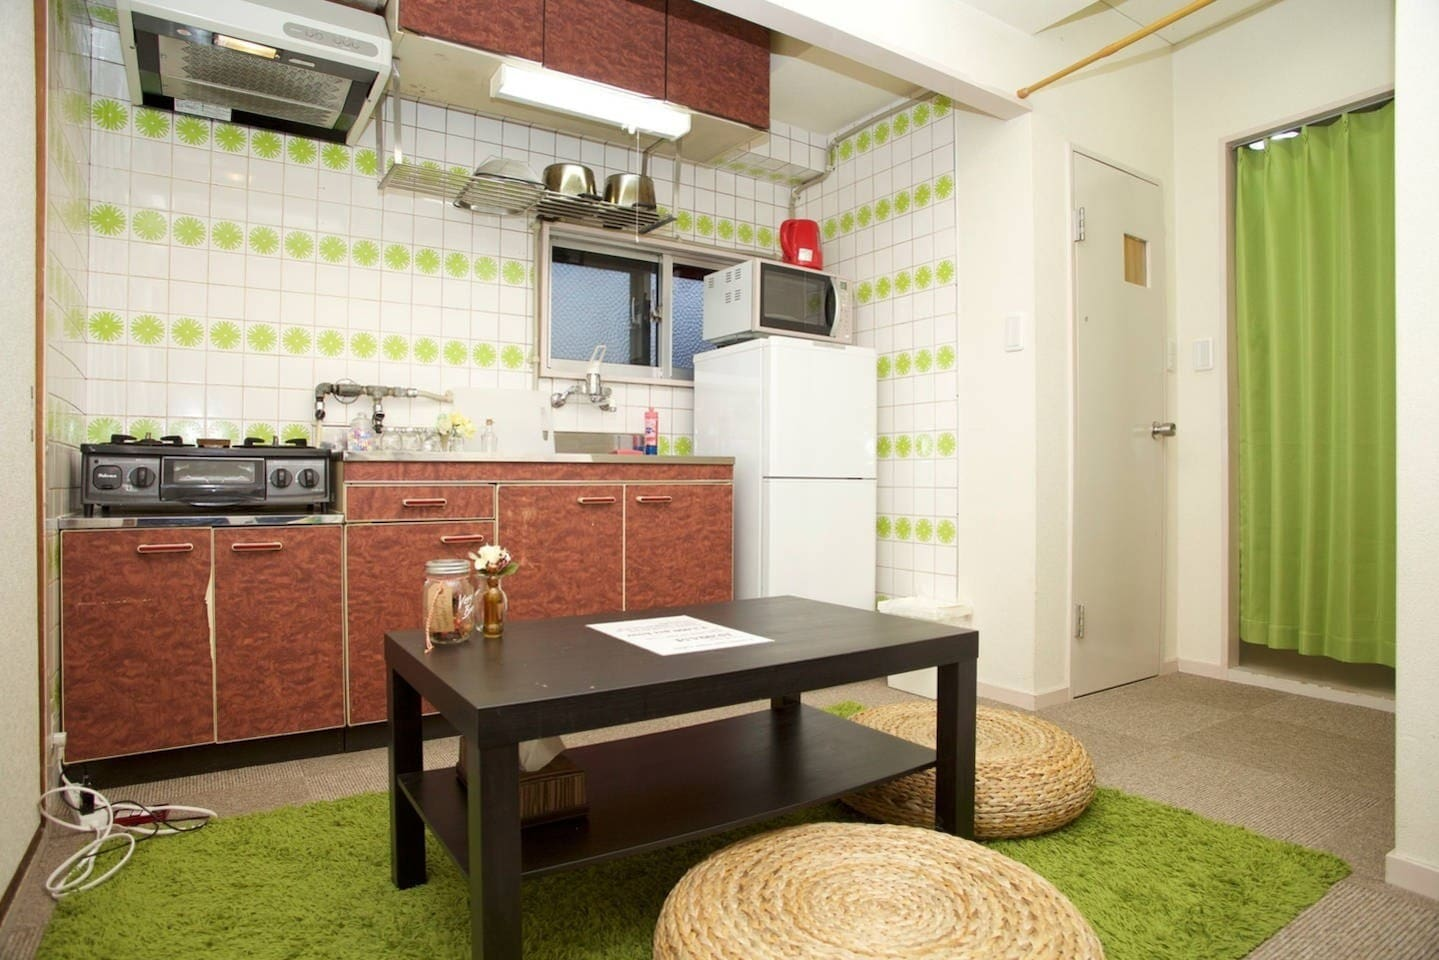 Spacious kitchen with complete equipments and utensils for your use